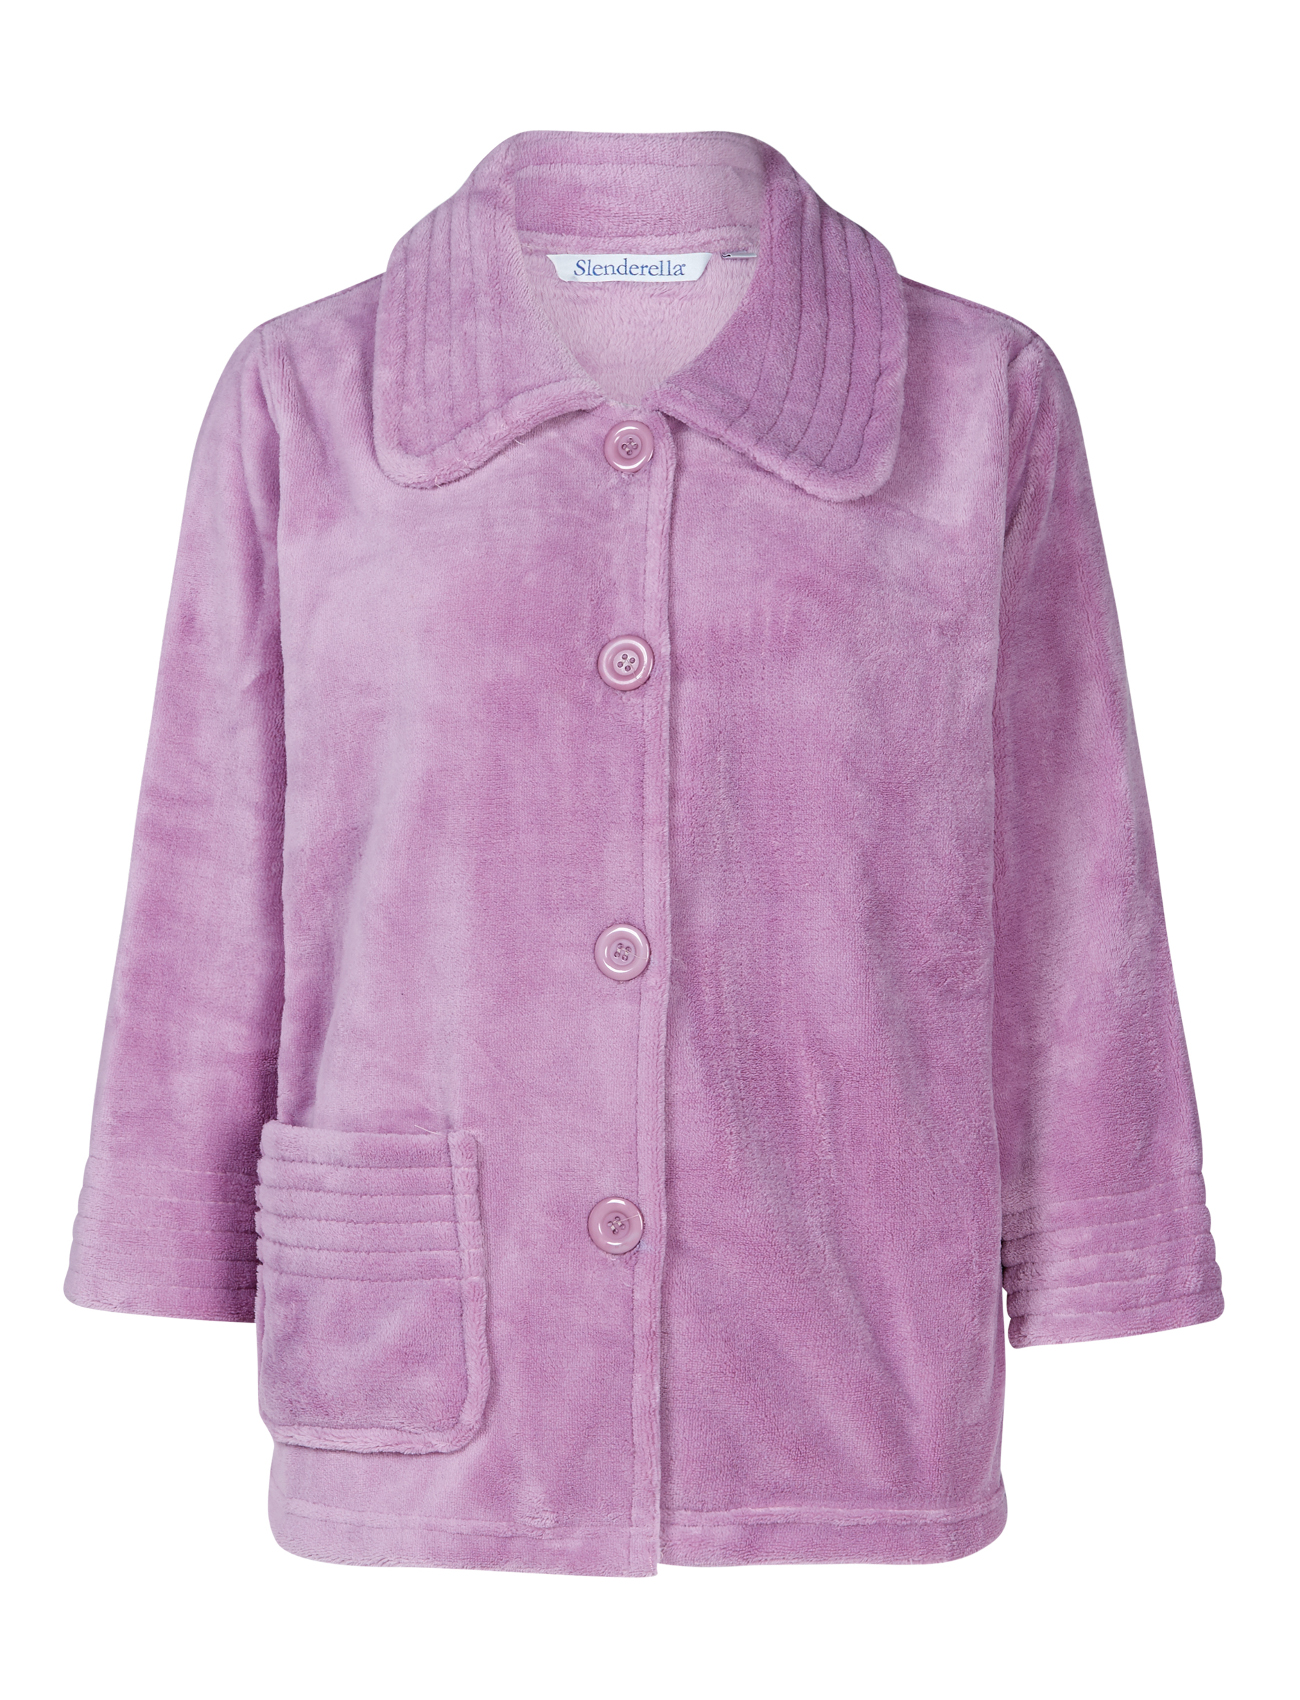 Bed Jacket Womens Button Up Soft Fleecy Ribbed Detail